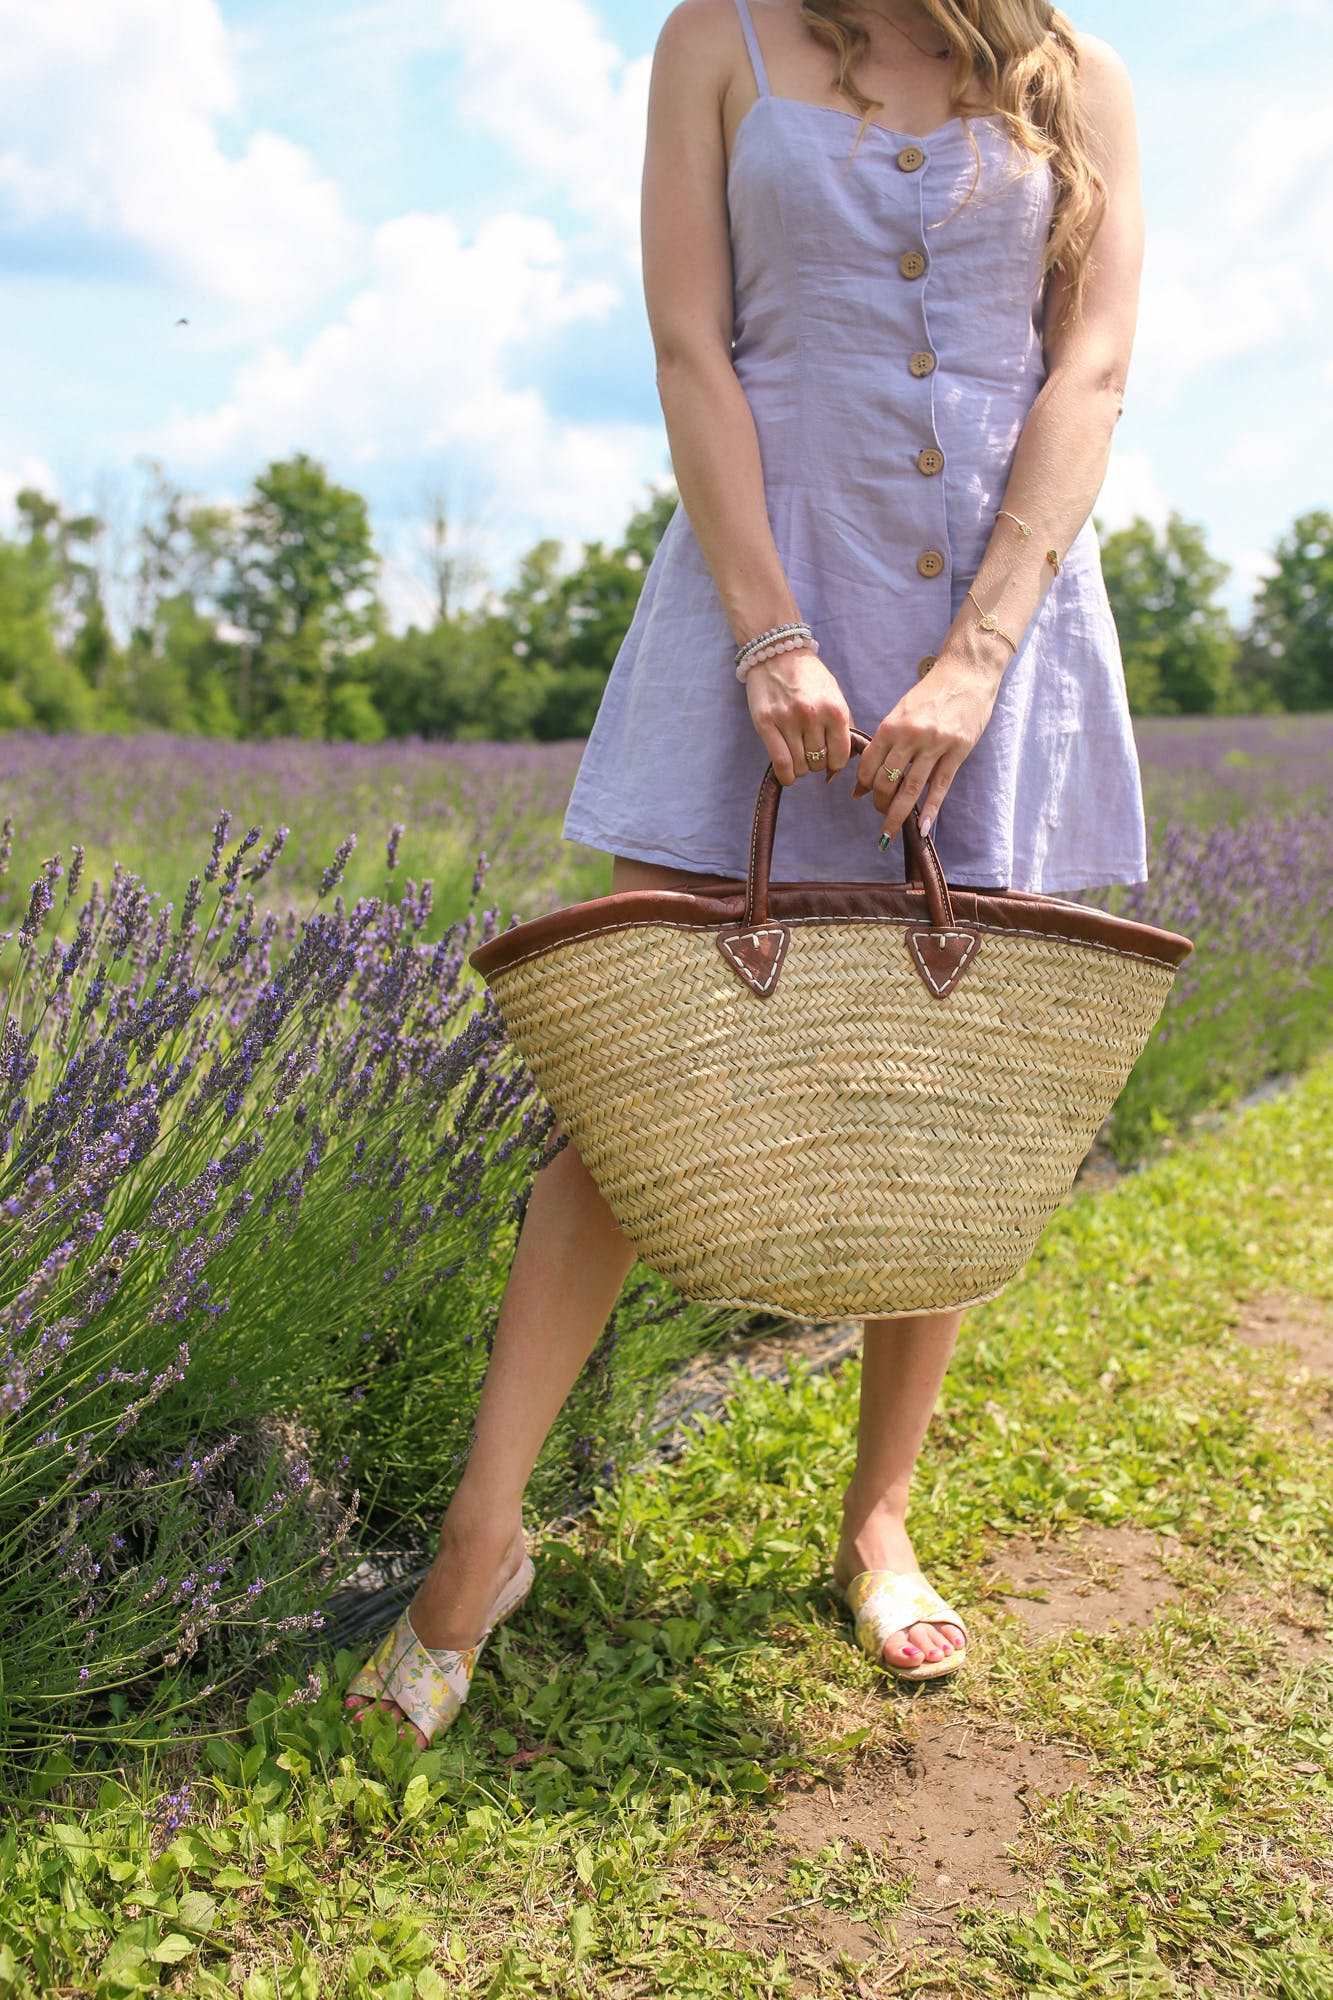 Straw market bag from Provence - perfect to visit a lavender field